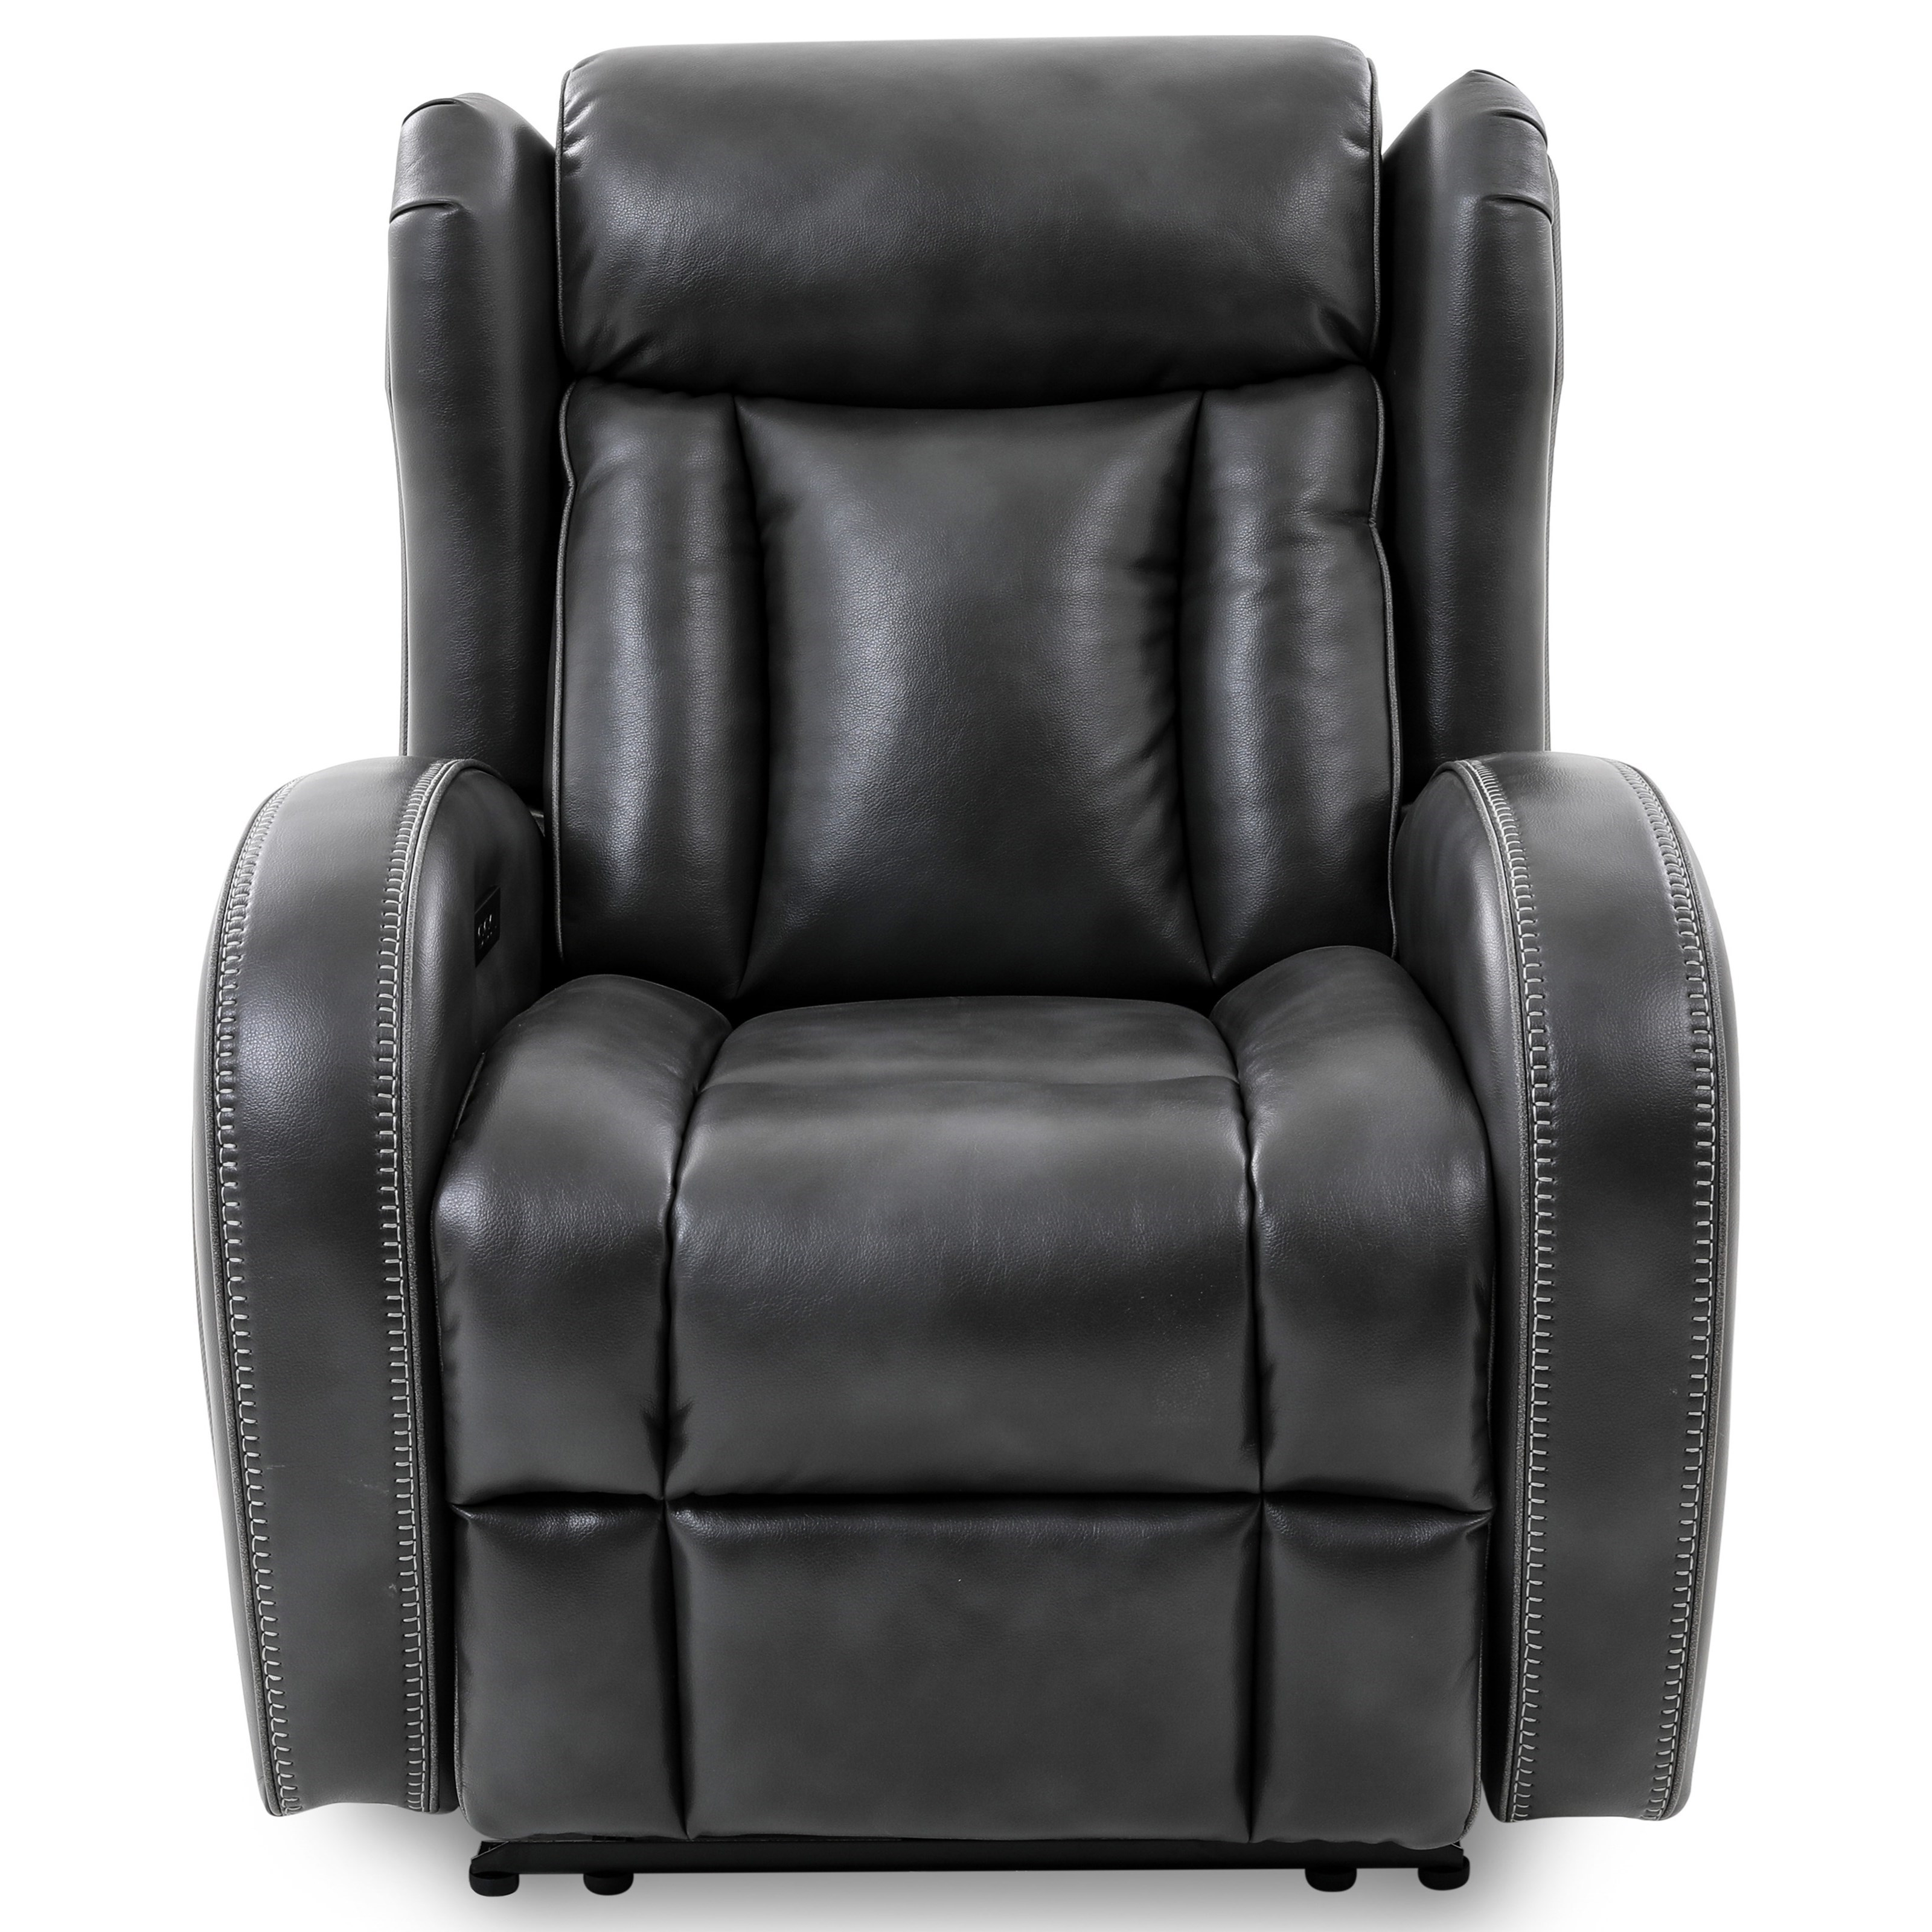 70083 Power Recliner by Cheers at Household Furniture